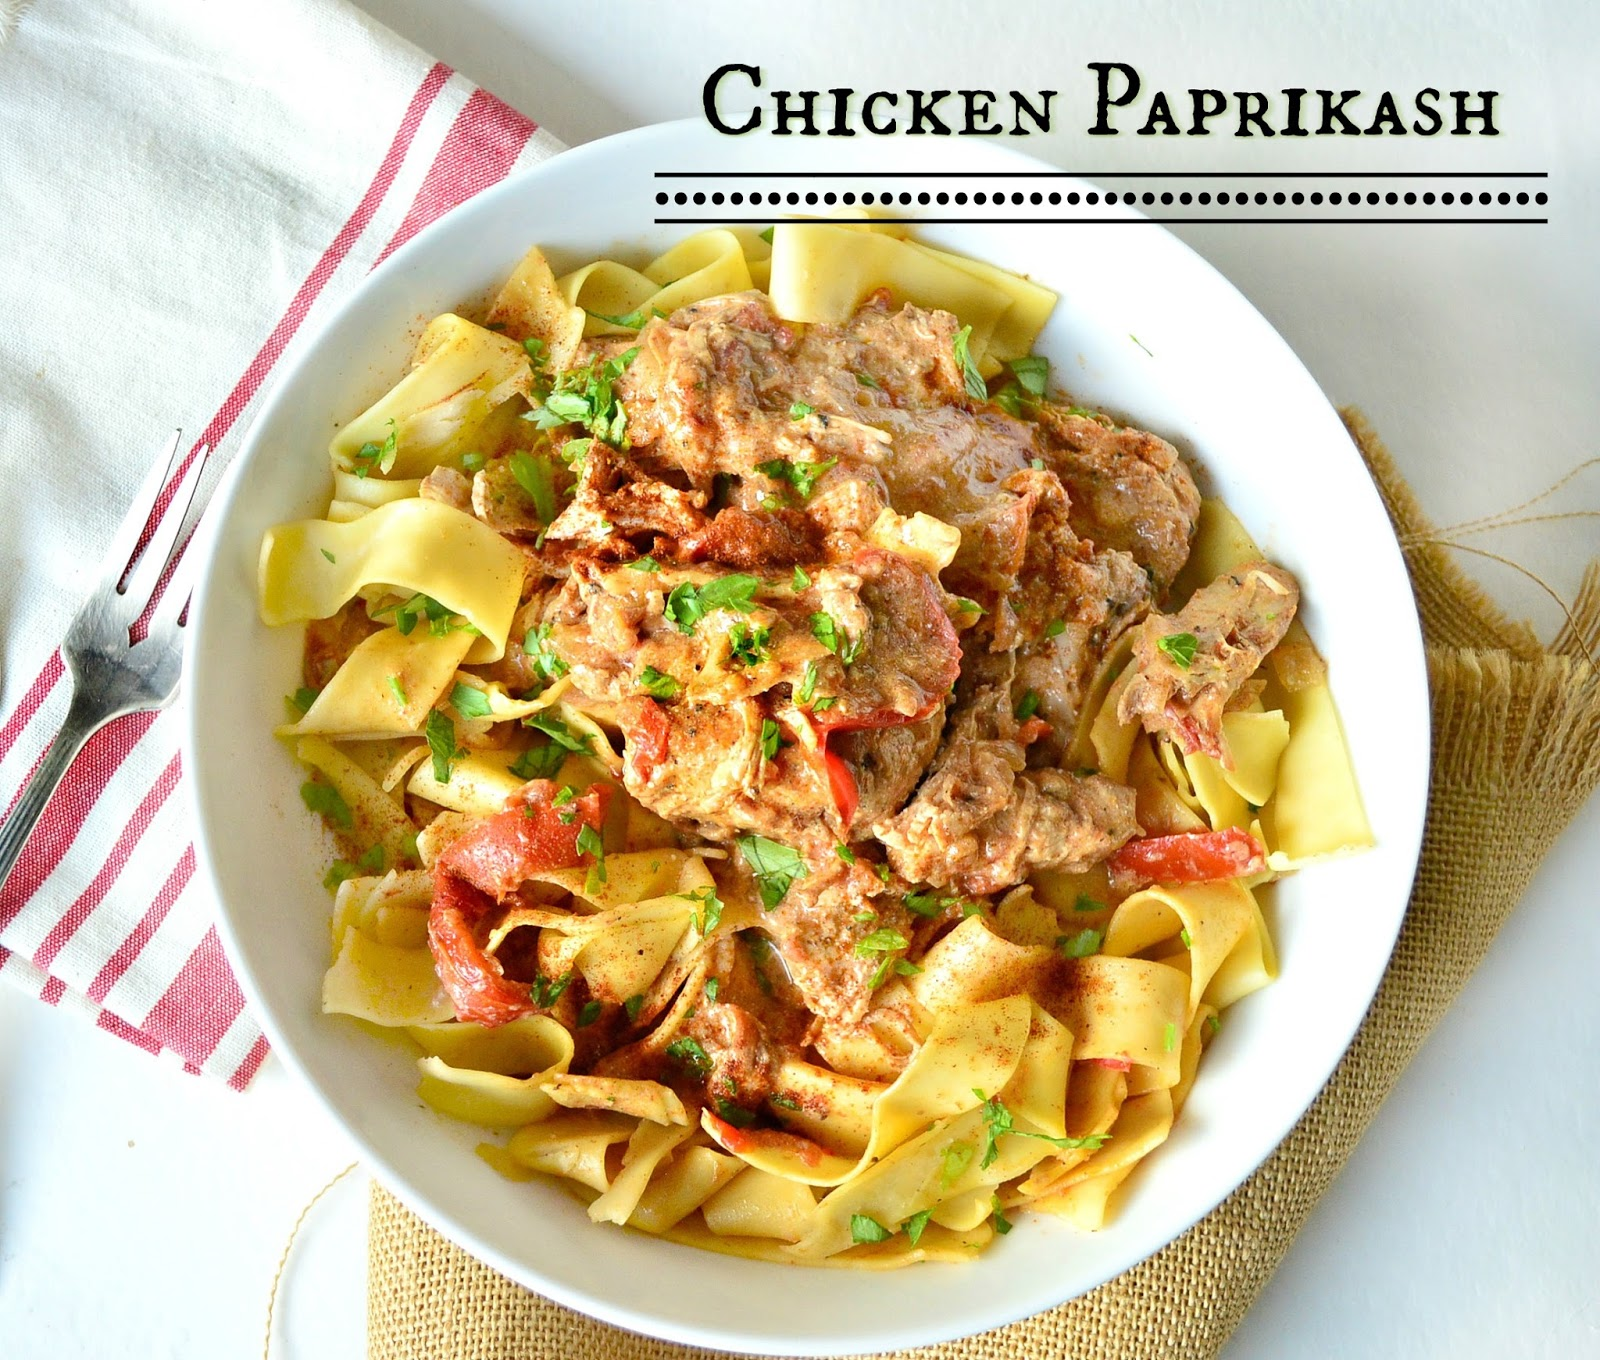 This is How I Cook: Chicken Paprikash